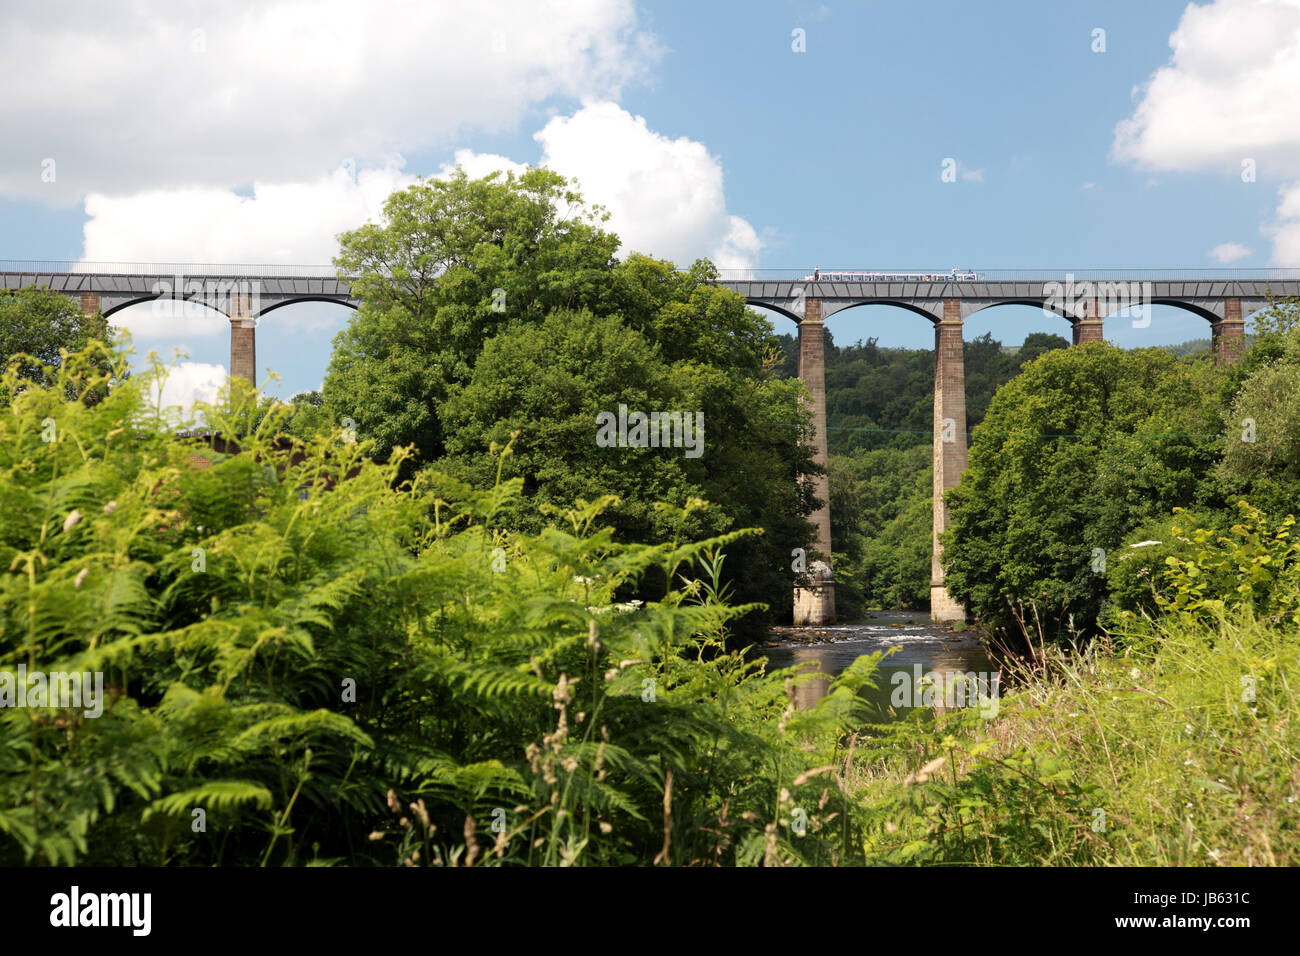 Pontcysyllte Aqueduct which carries the Llangollen Canal over the river Dee in north Wales seen from Trevor - Stock Image